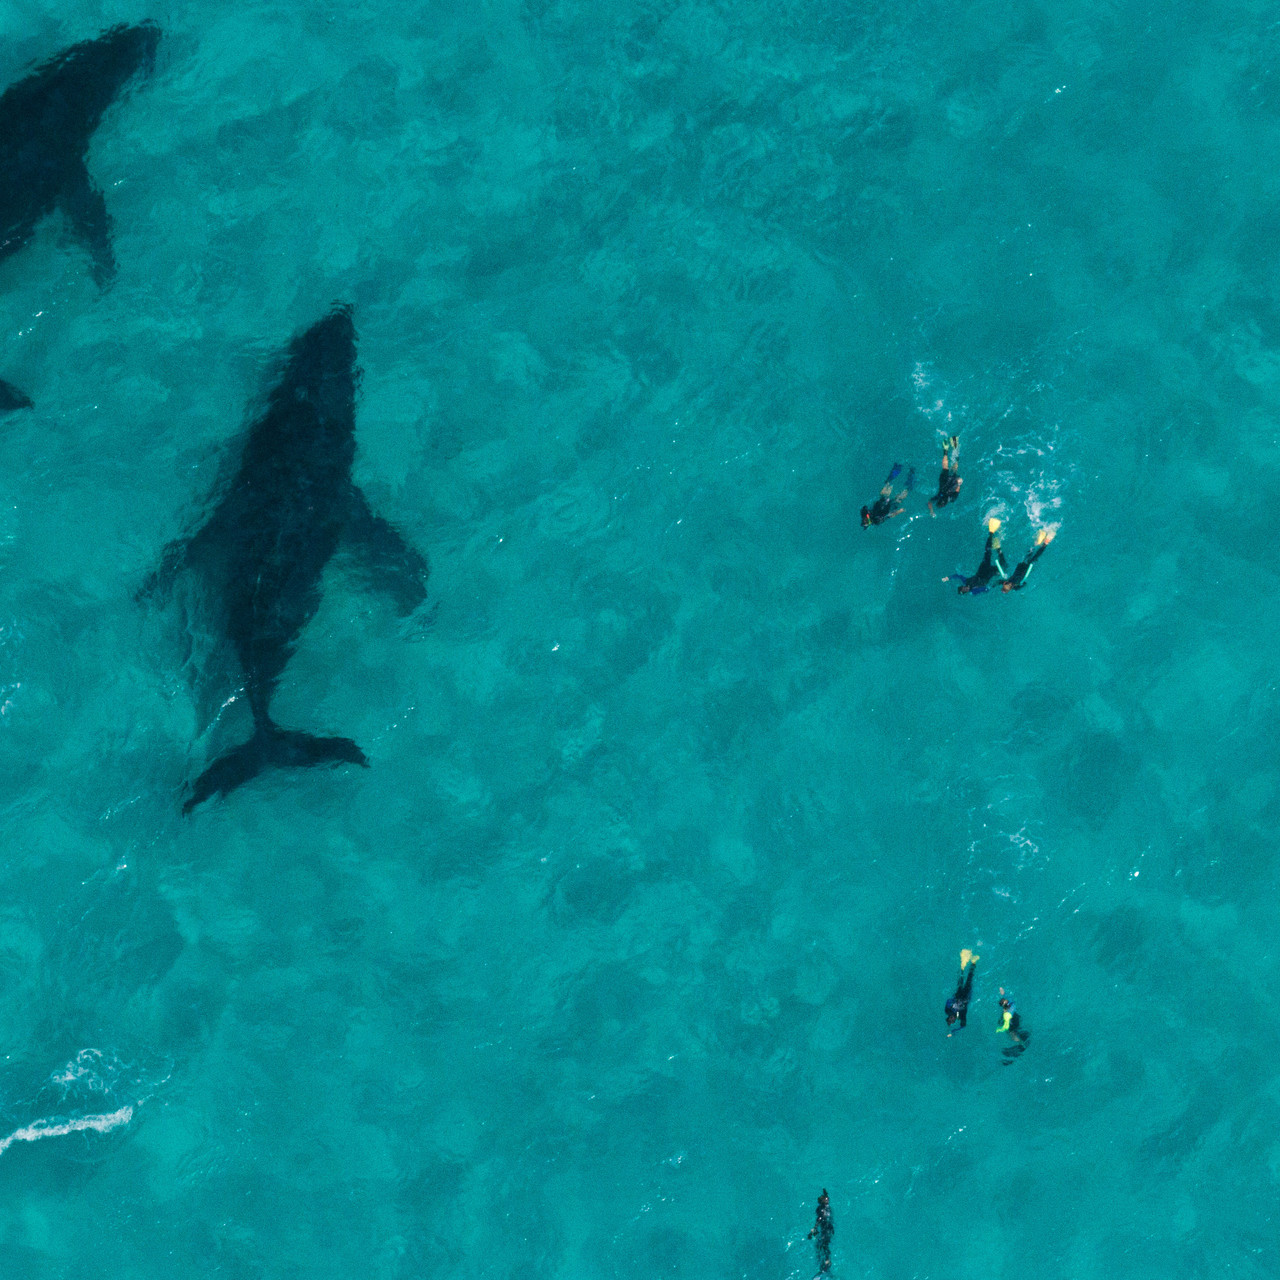 From above, humpbacks